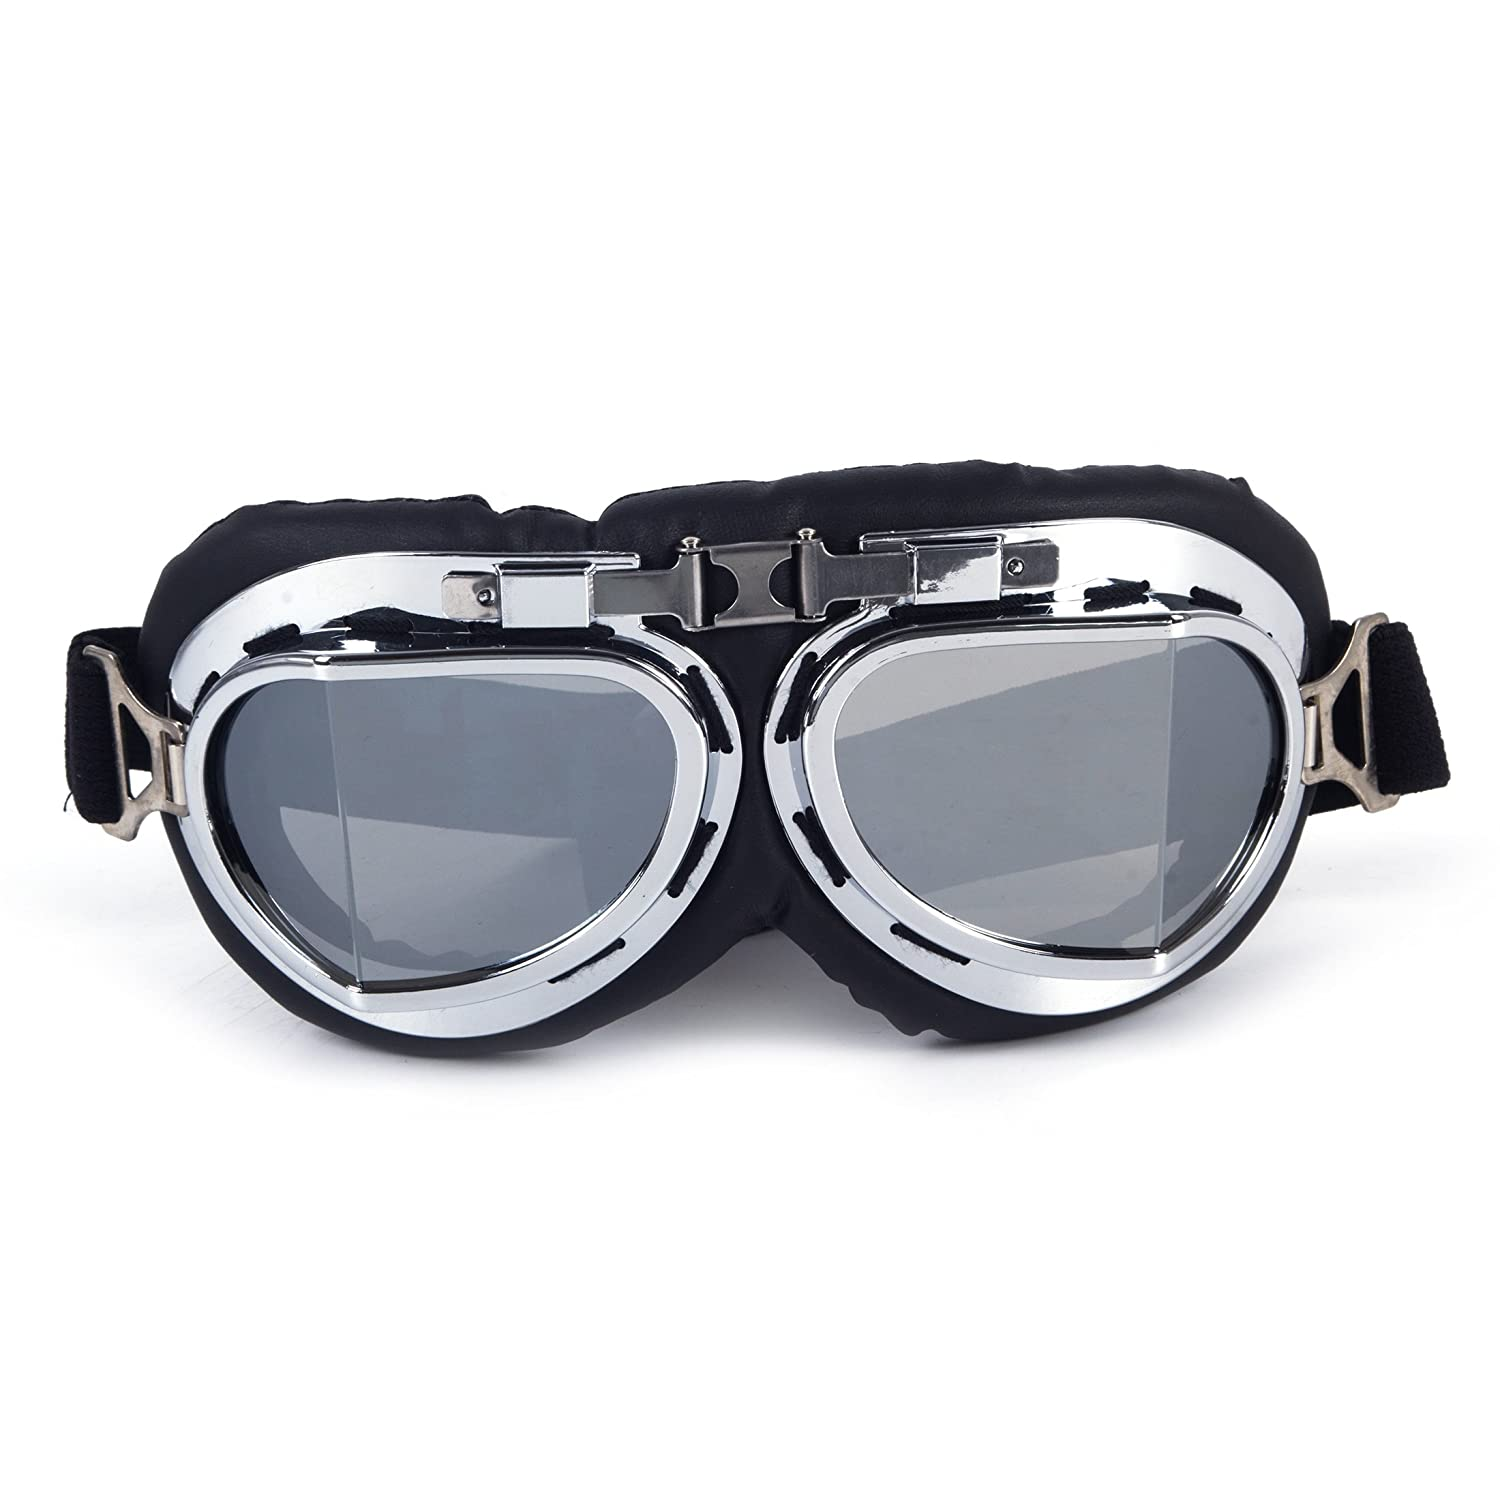 FIRSTLIKE 3-5 Days Delivery Helmet Steampunk Vintage Goggles Sunglasses Eyewear for Outdoor Sports Motocross Racer MG001-B-USA-LSY-BB